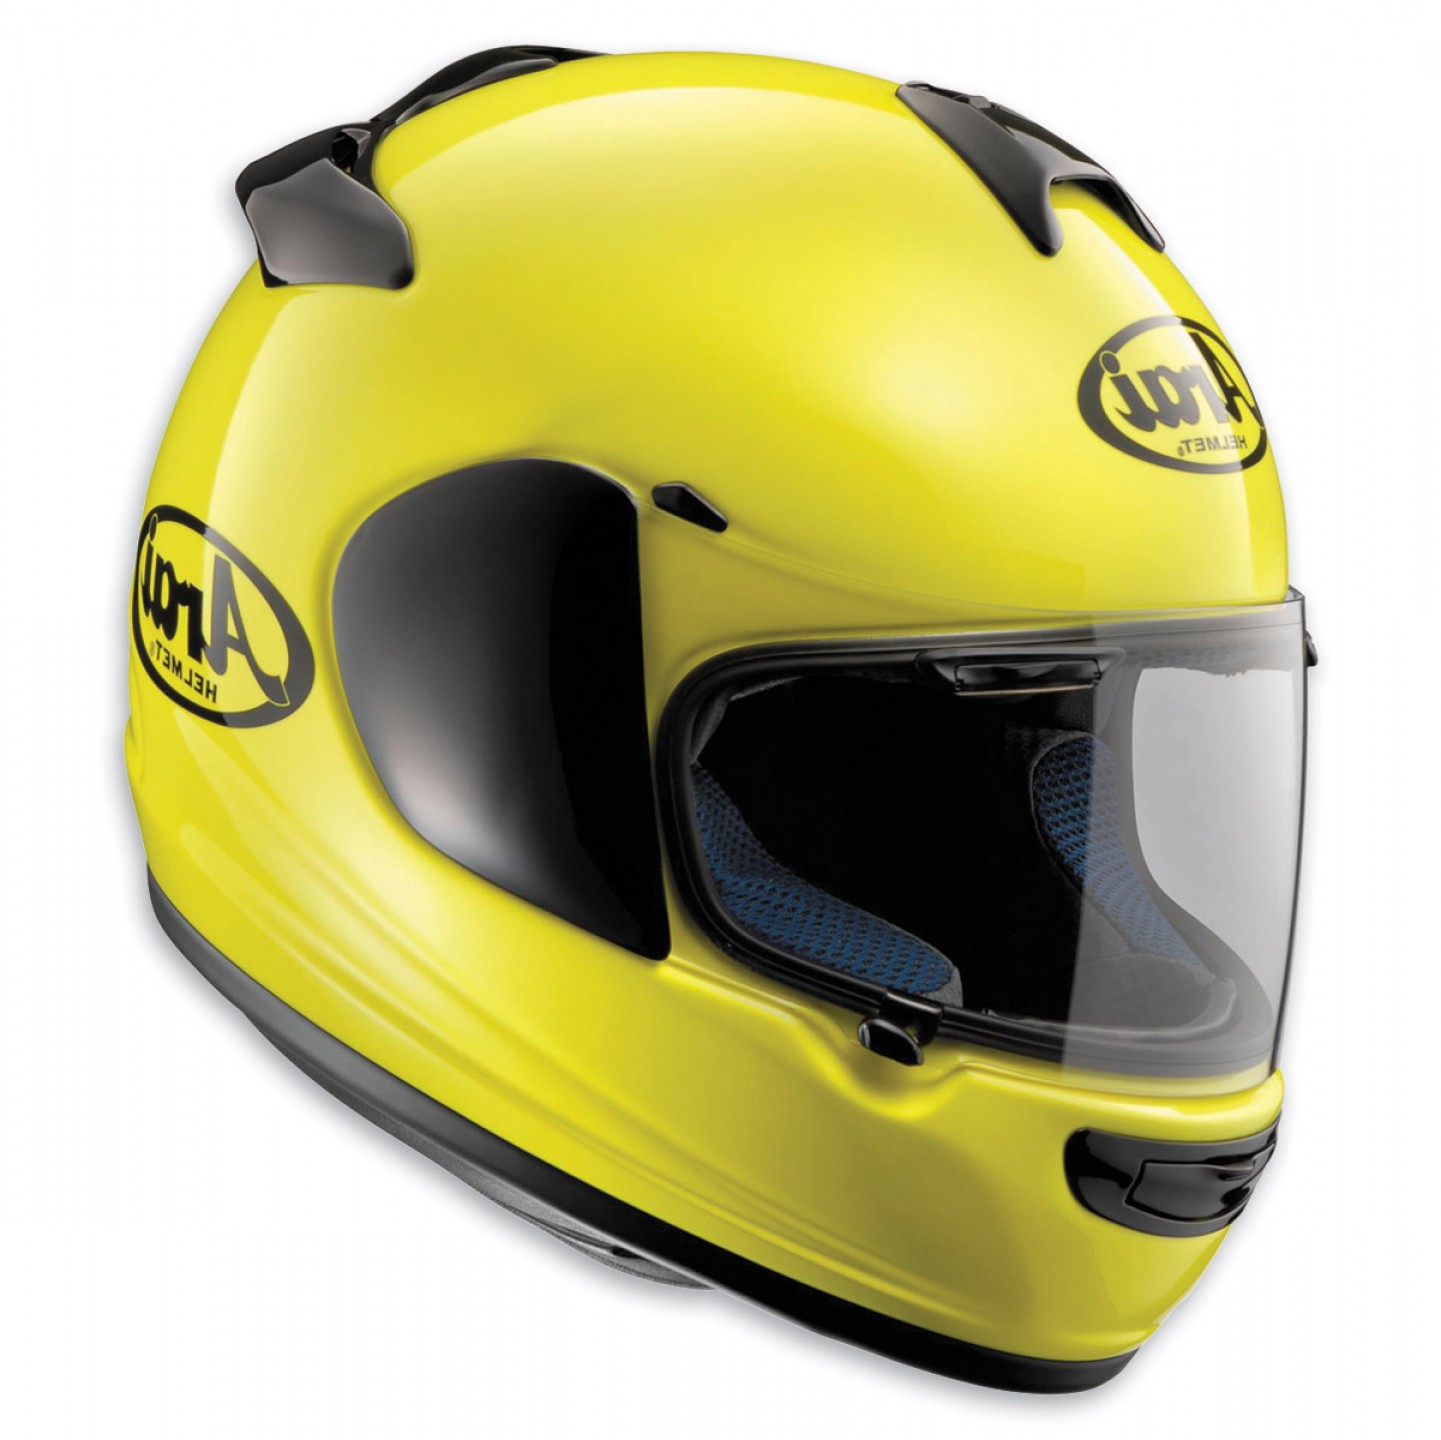 Arai Vector 2 Model: Arai Vector Fluorescent Yellow Full Face Helmet